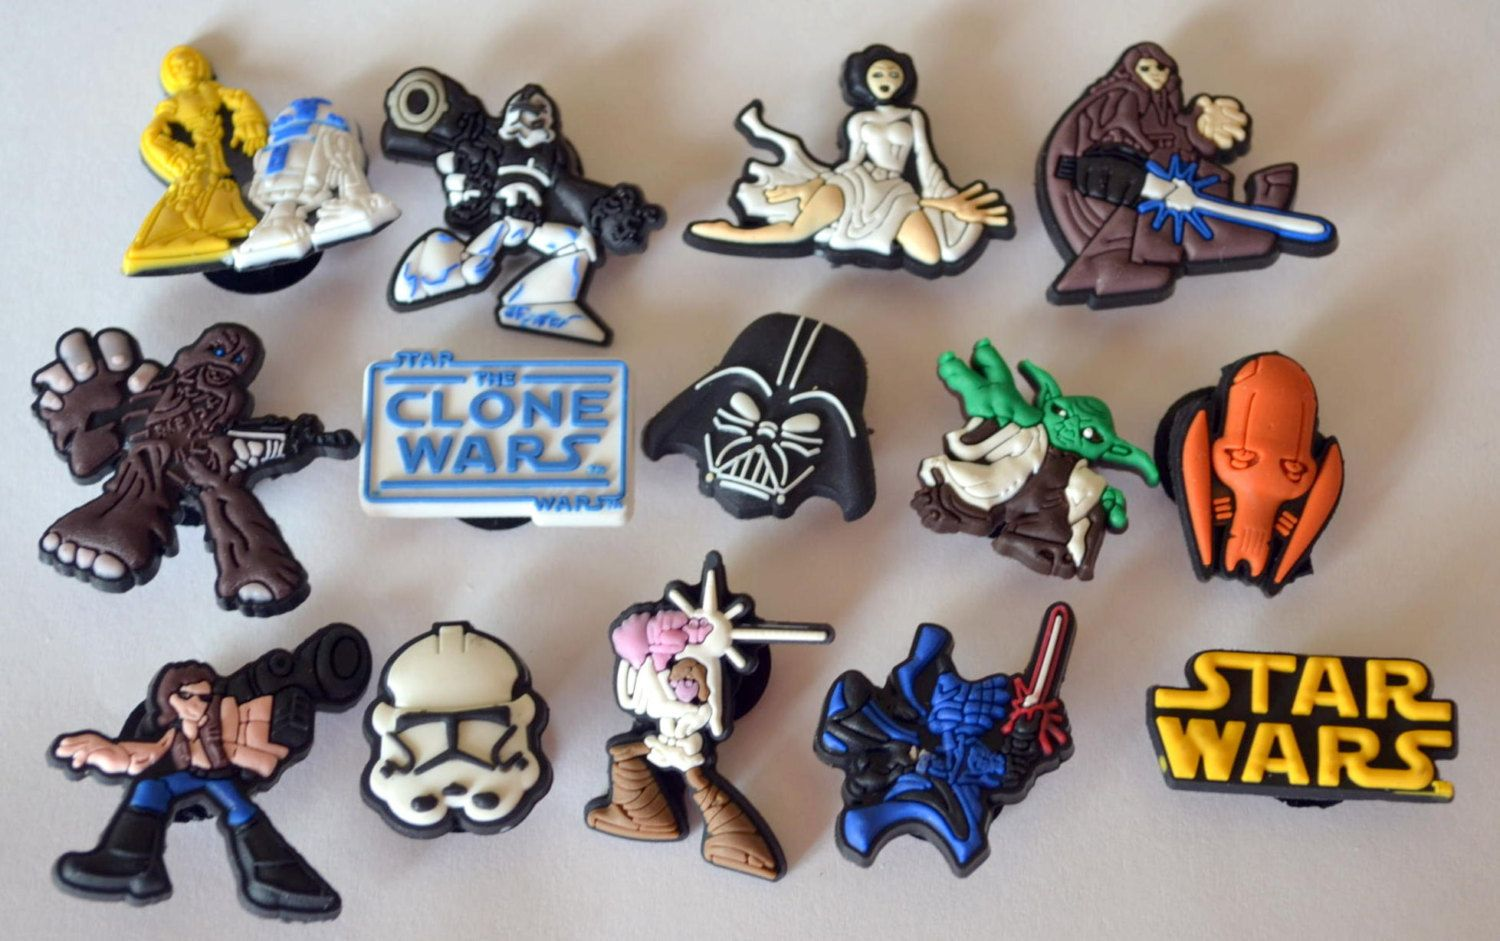 Star Wars Clone Wars 14pc Shoe Charms Cake Toppers Birthday Party Pack, Locker Magnets, Back Pack Zipper Pulls fit Wristbands by GroovyDeals on Etsy